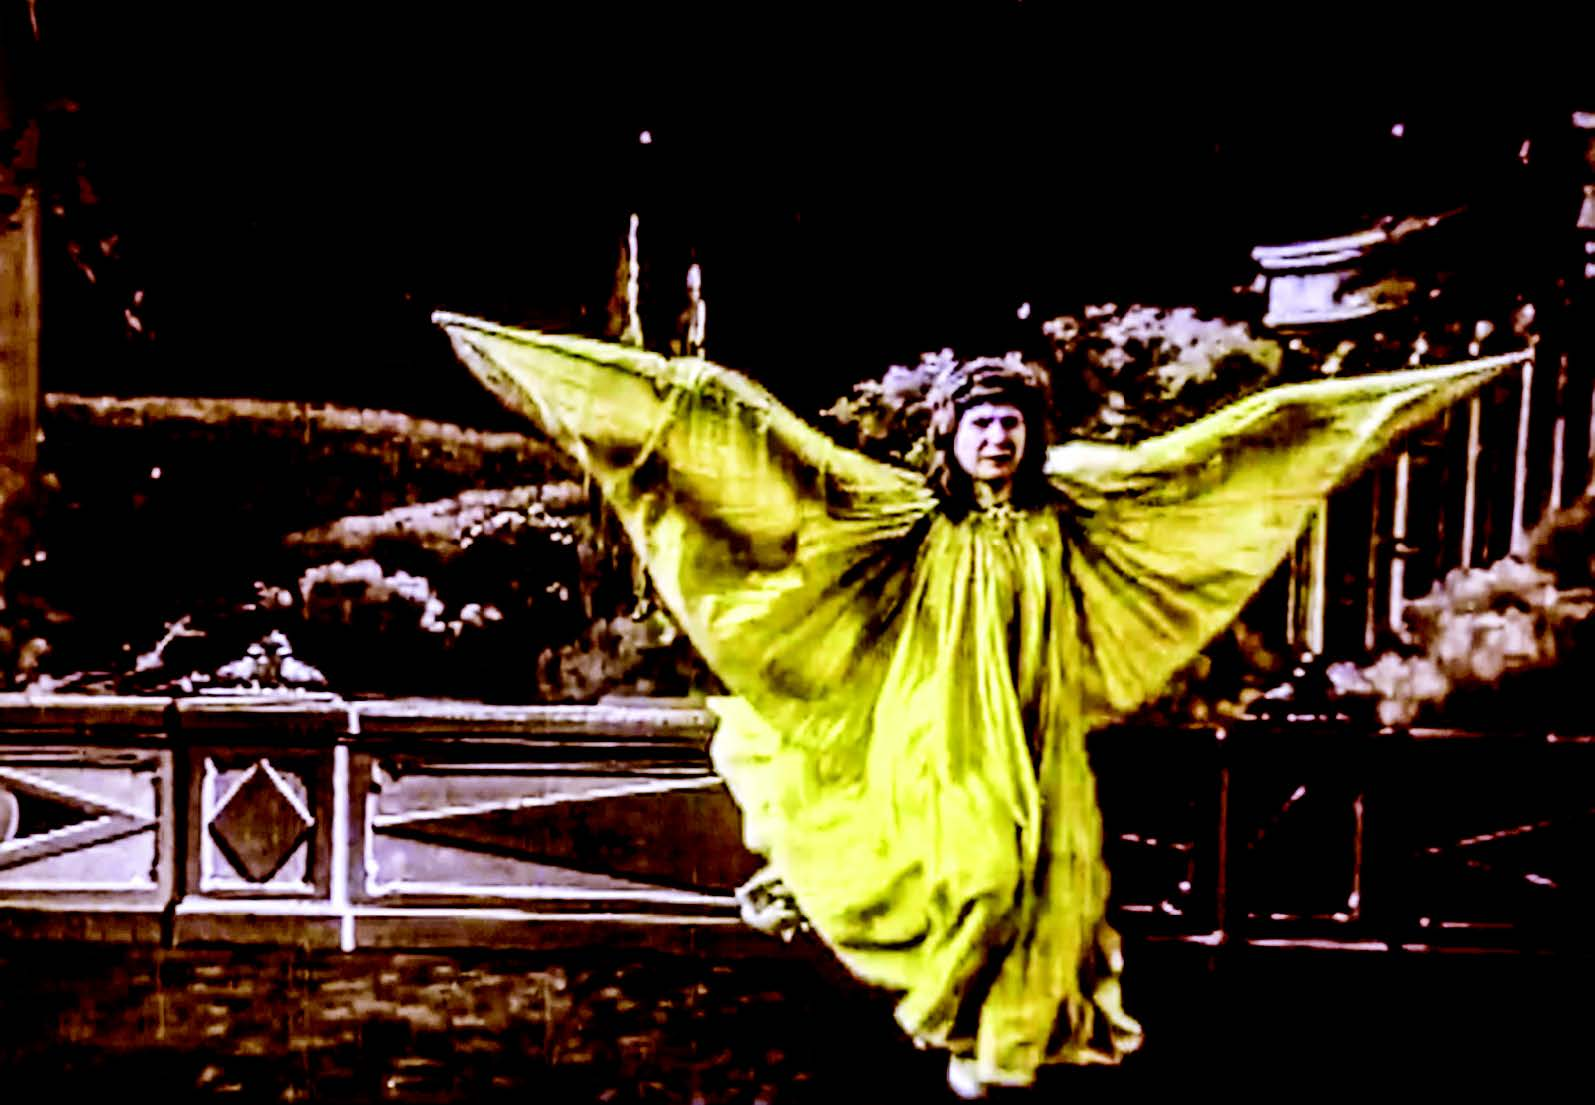 Frame from the Pathé Frères film Loïe Fuller, distributed in America in 1905.